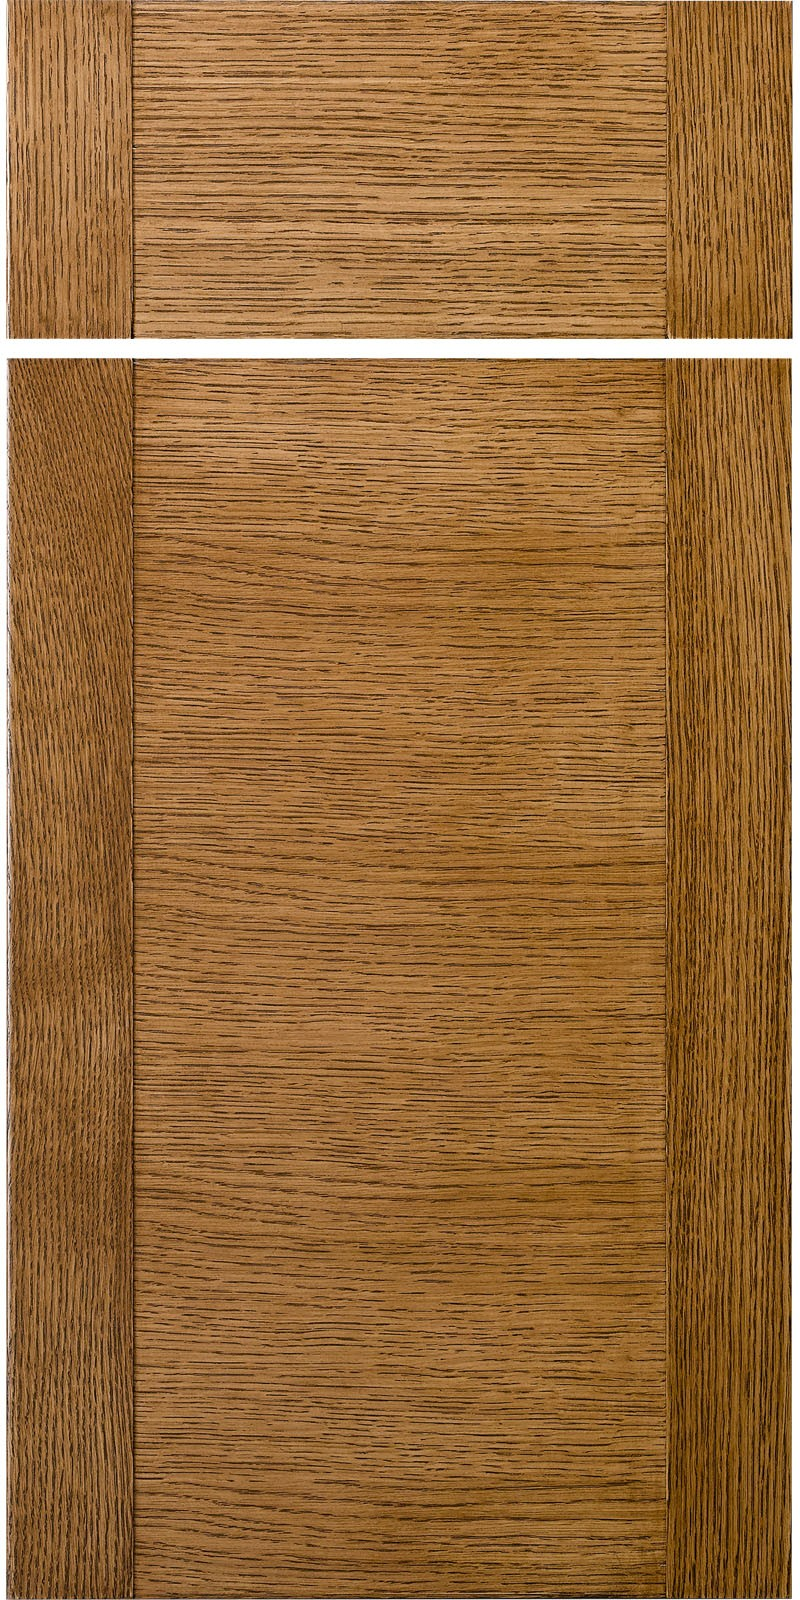 Aurora – White Oak Door Sample